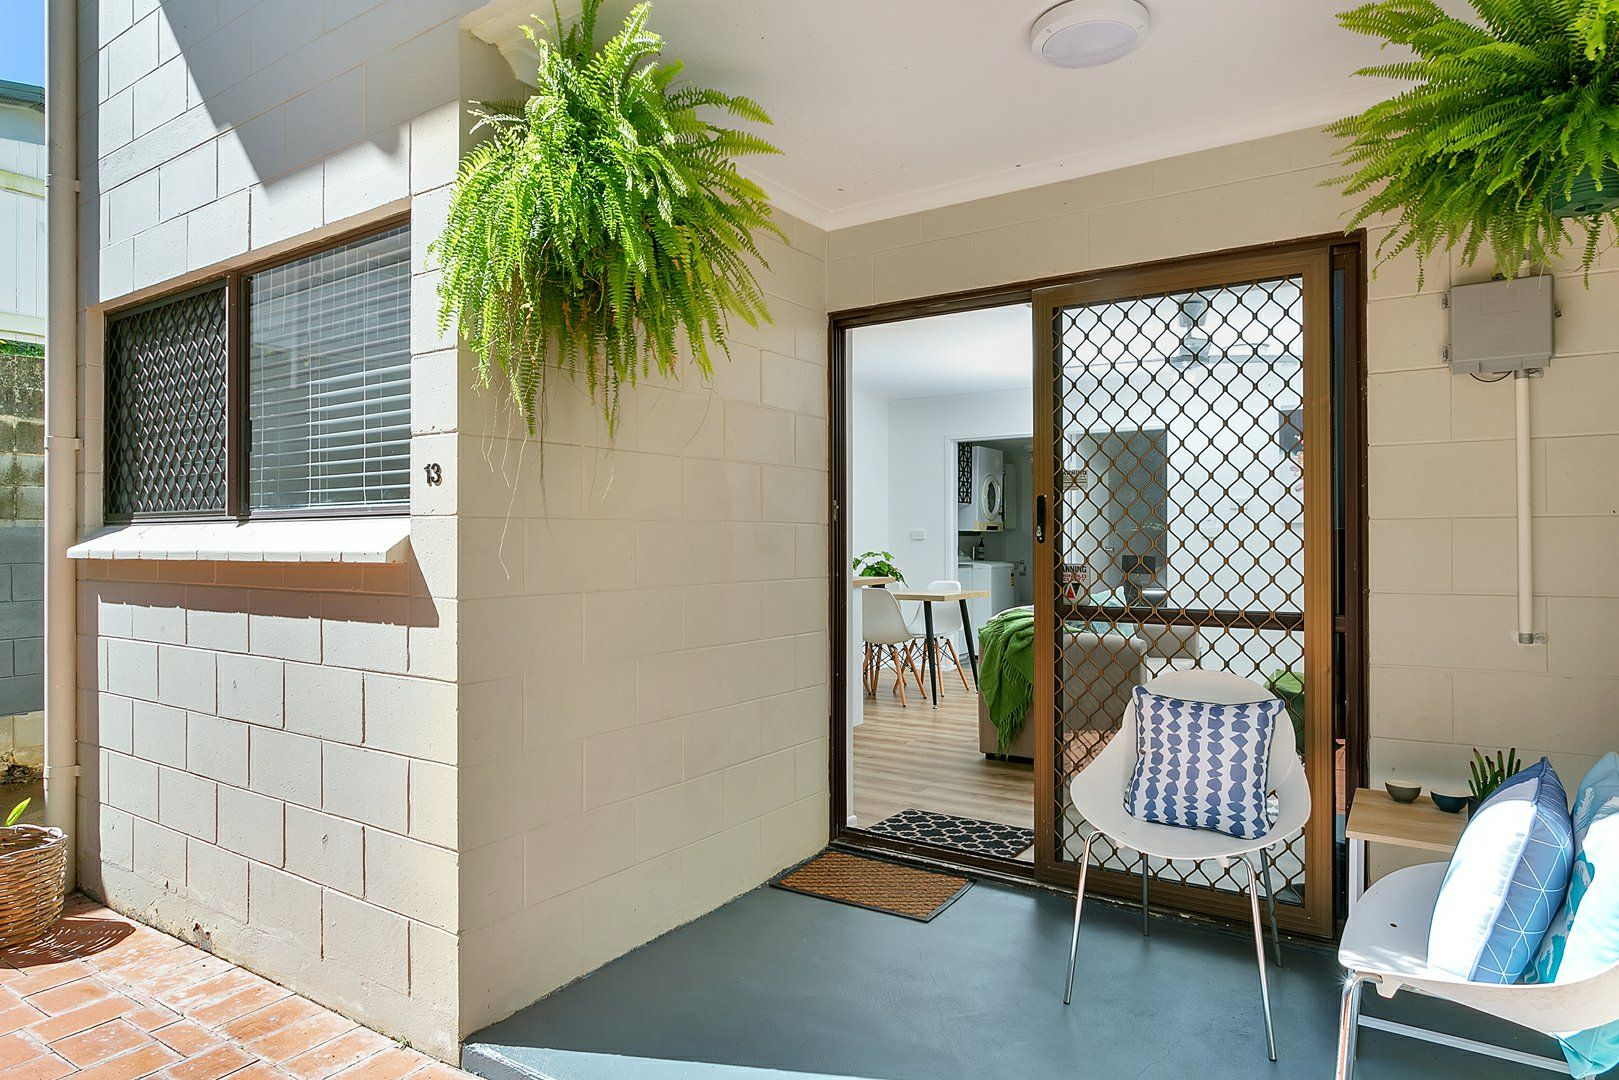 13/50-56 Woodward Street, Edge Hill QLD 4870, Image 1